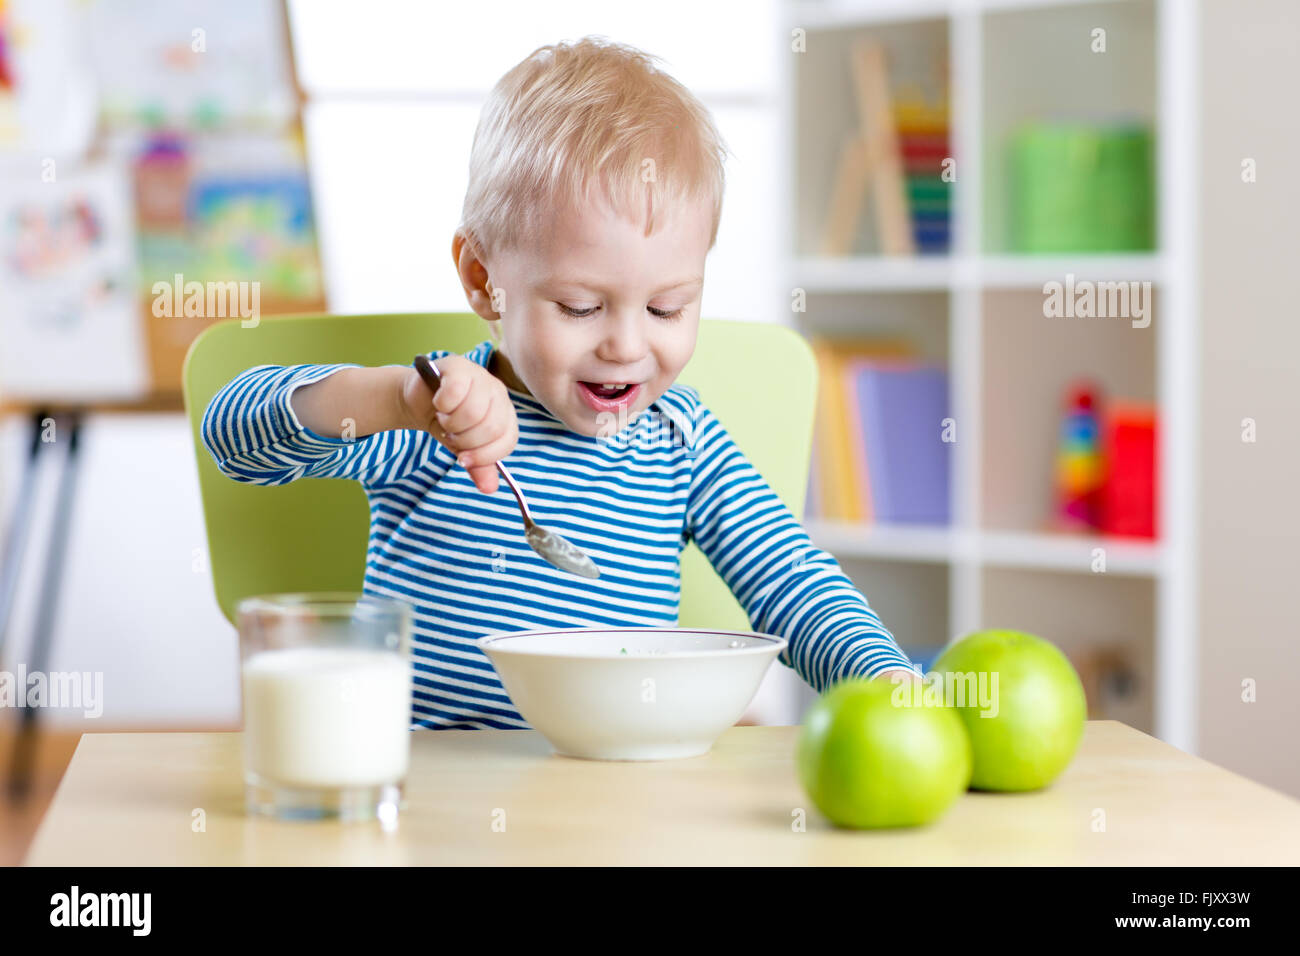 kid eating healthy food at home or kindergarten - Stock Image